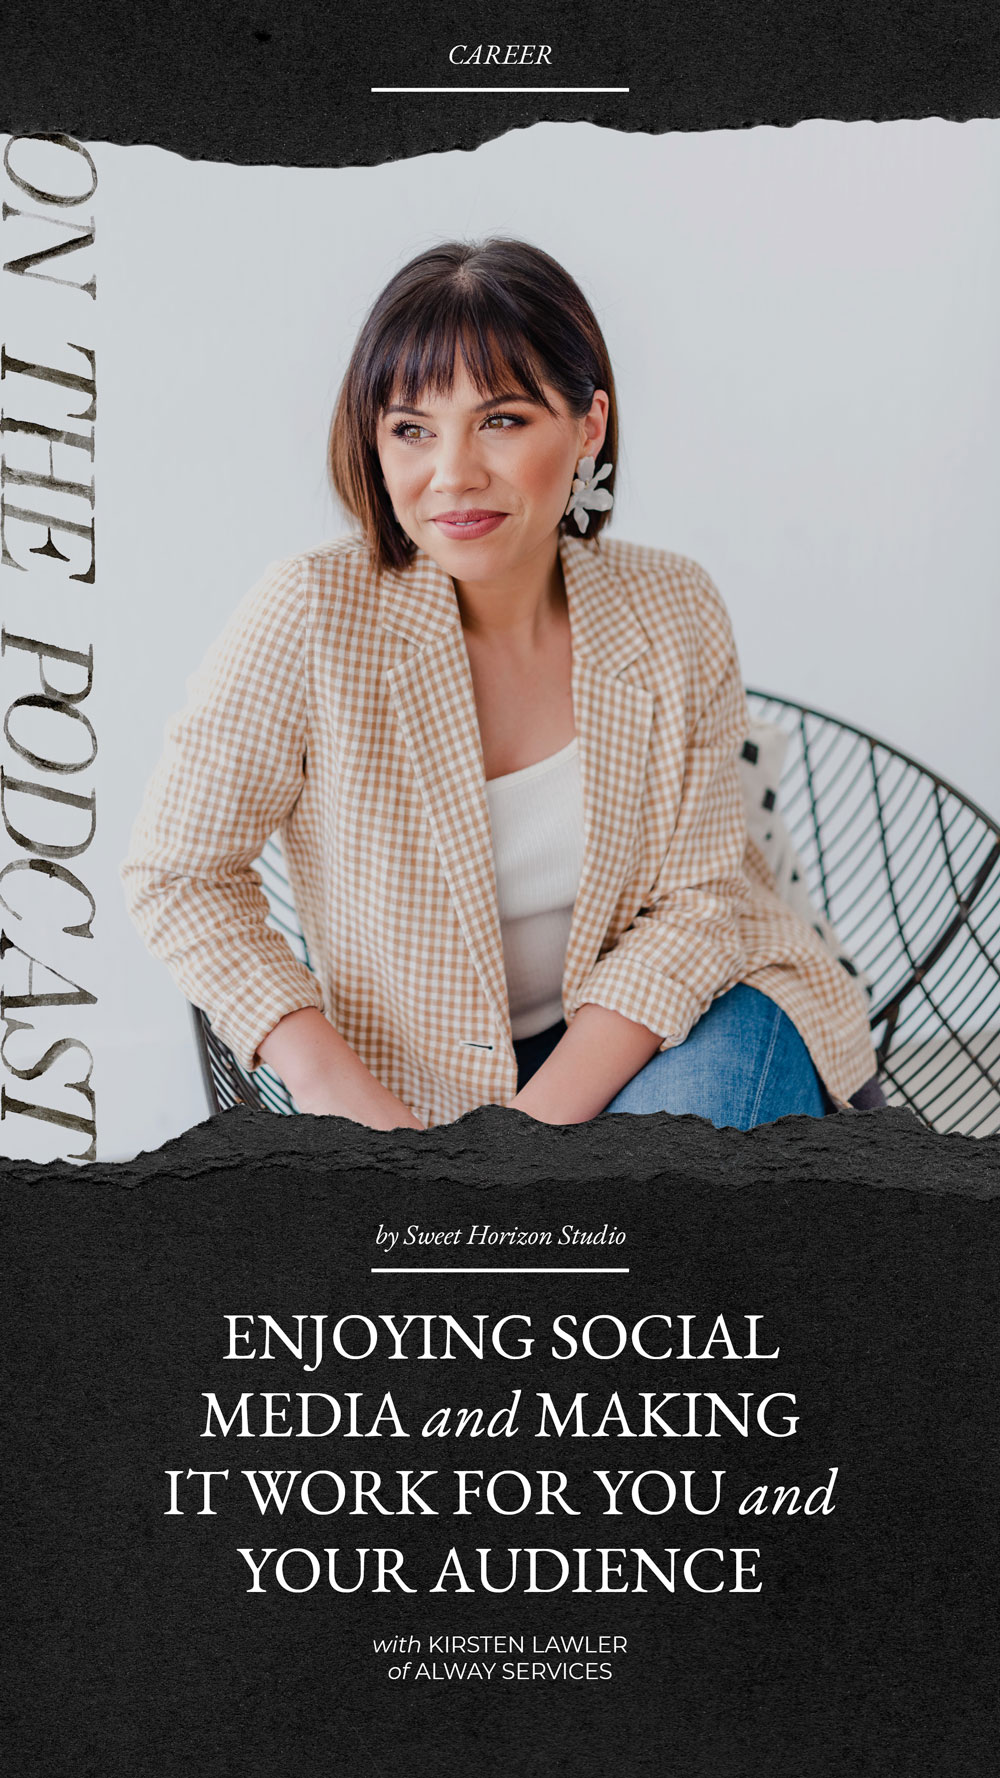 Enjoying social media and making it work for you and your audience with Alway Services from www.sweethorizonblog.com